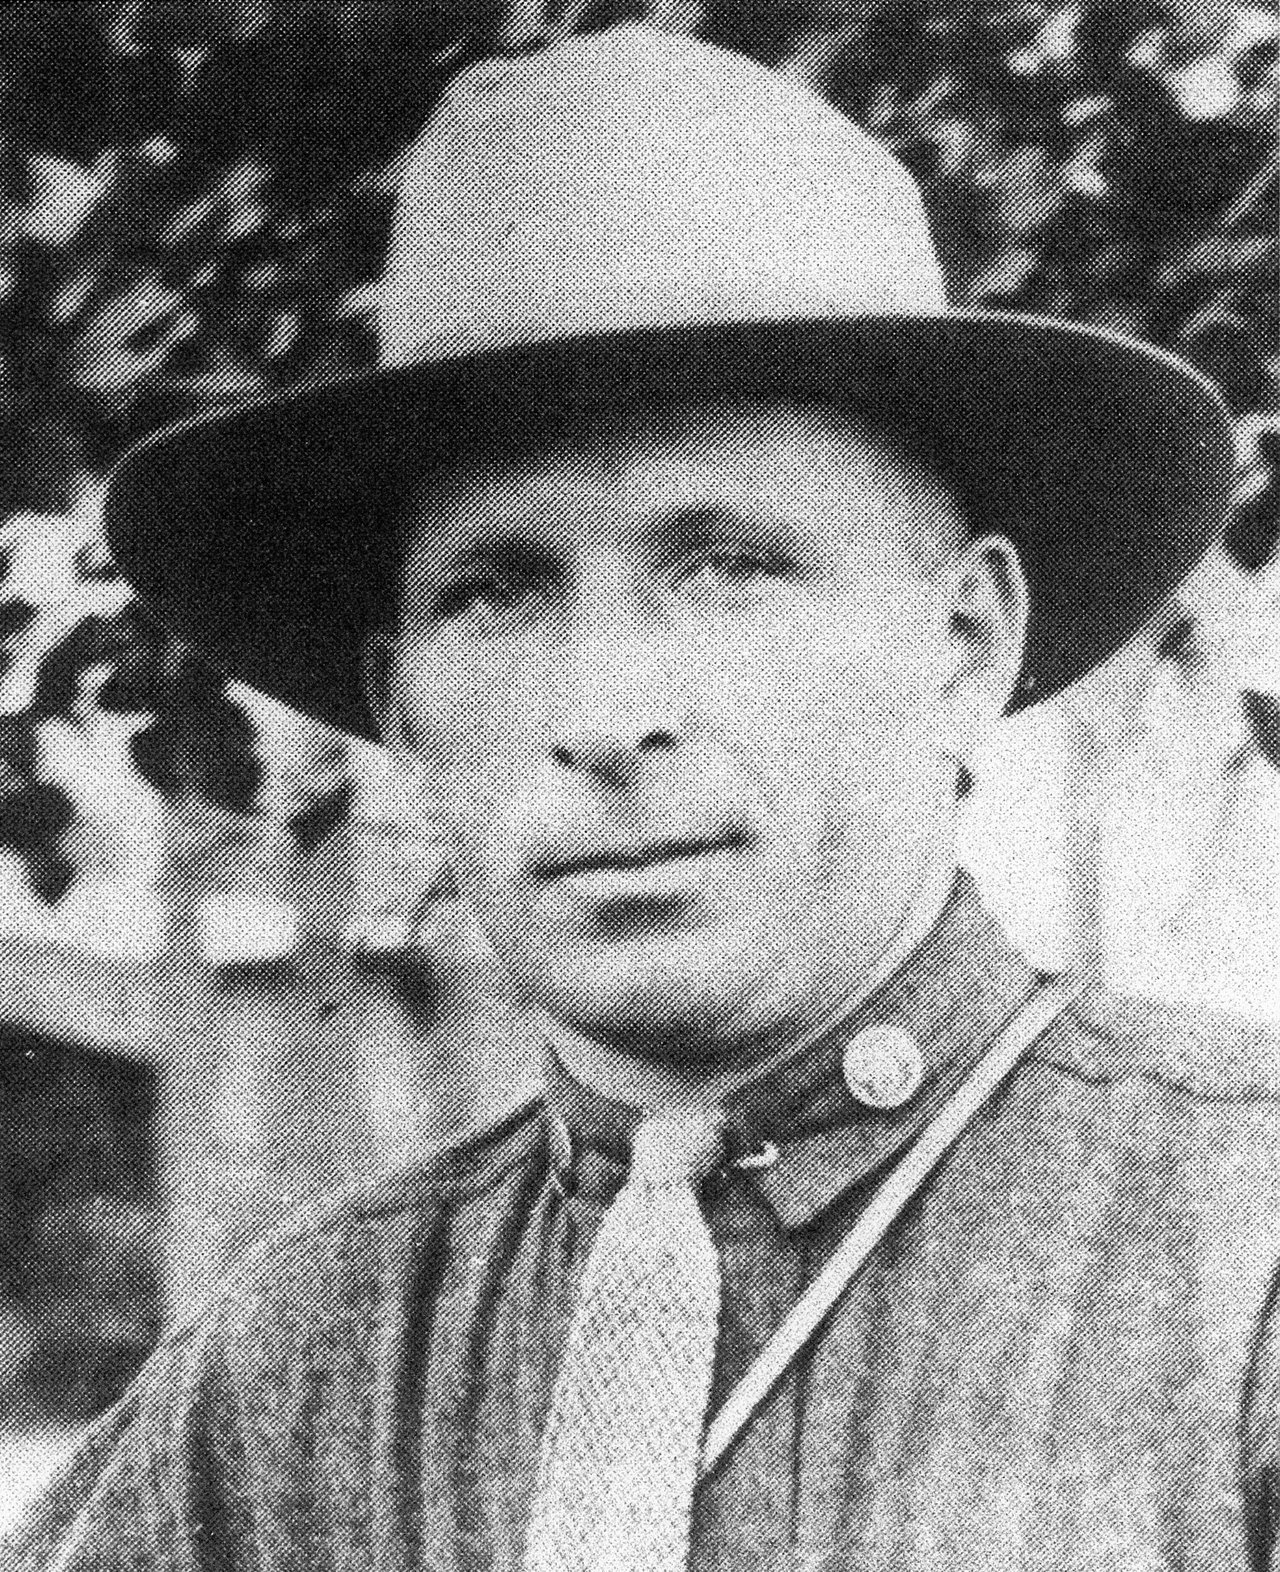 December 1, 1927 - Trooper Ernest M. Simpson